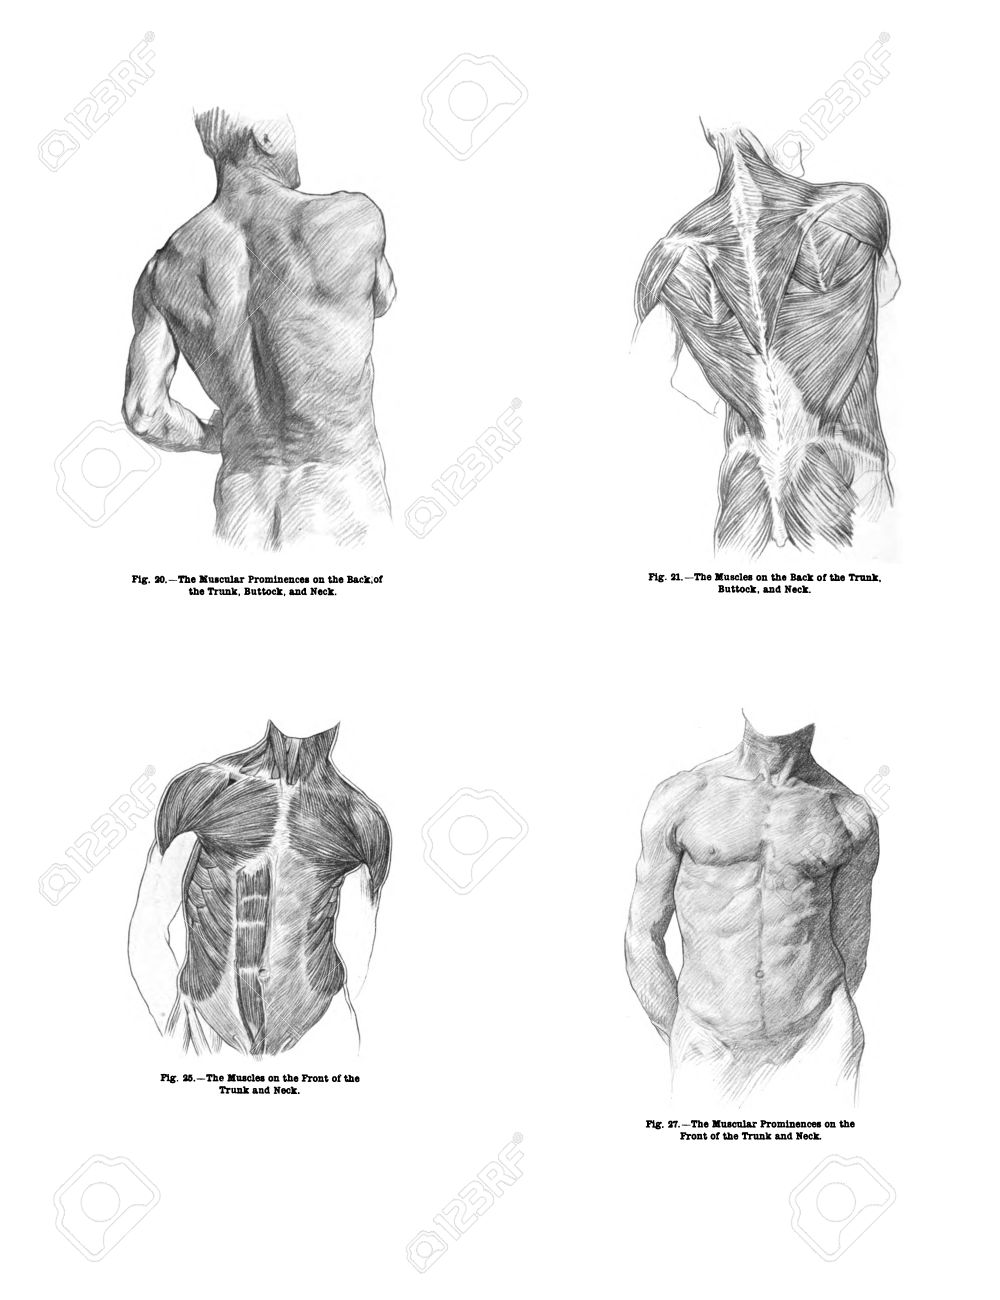 4 Views Of The Human Back Muscles, And Torso From Out Of Print ...